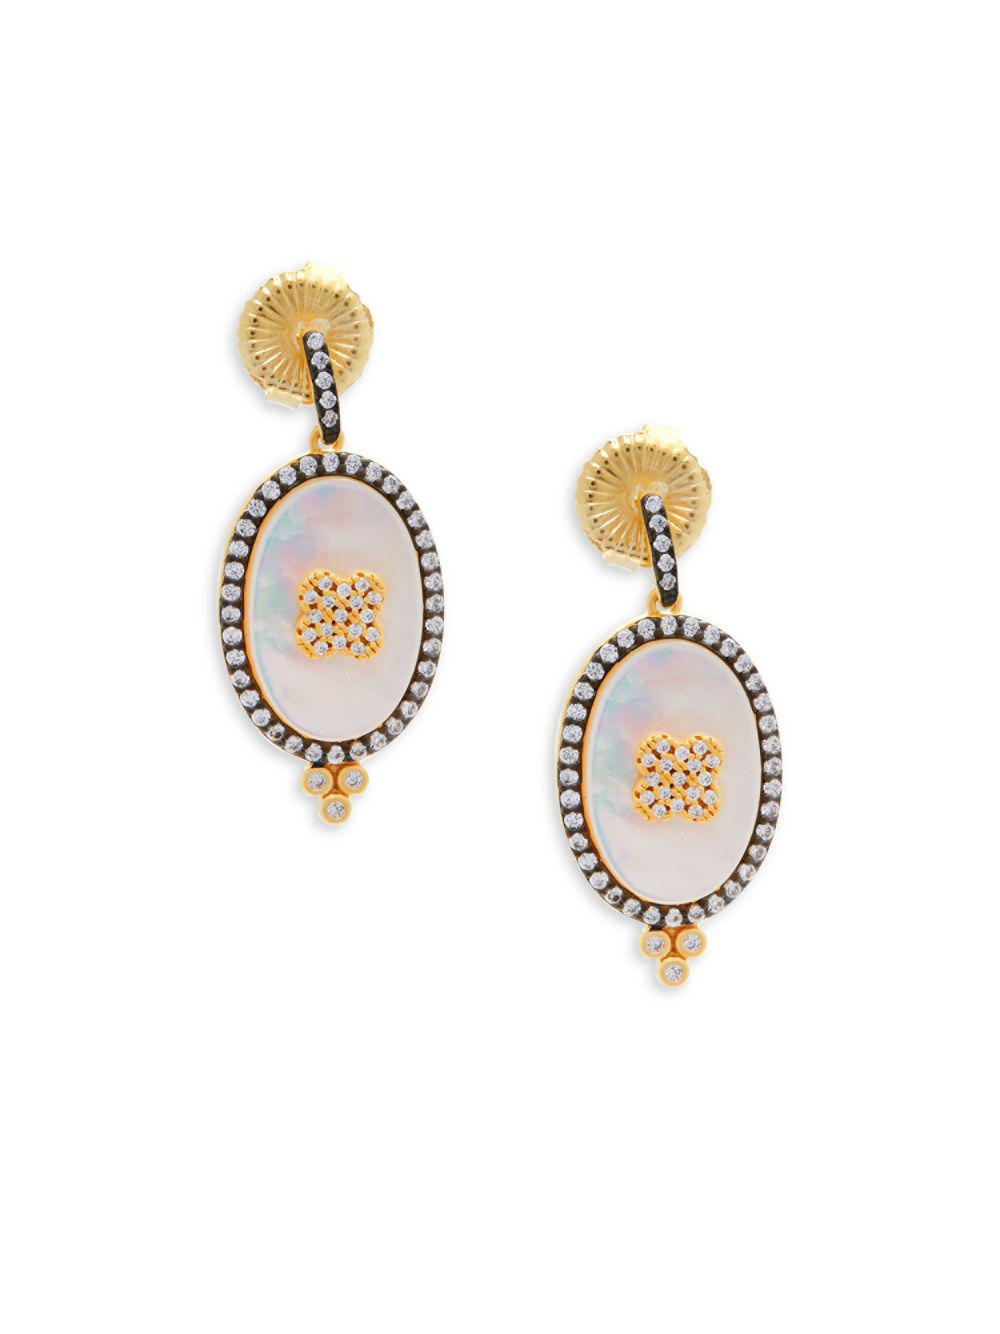 Freida Rothman Oversized Pave Clover Stud Earrings X2kXtZZu0